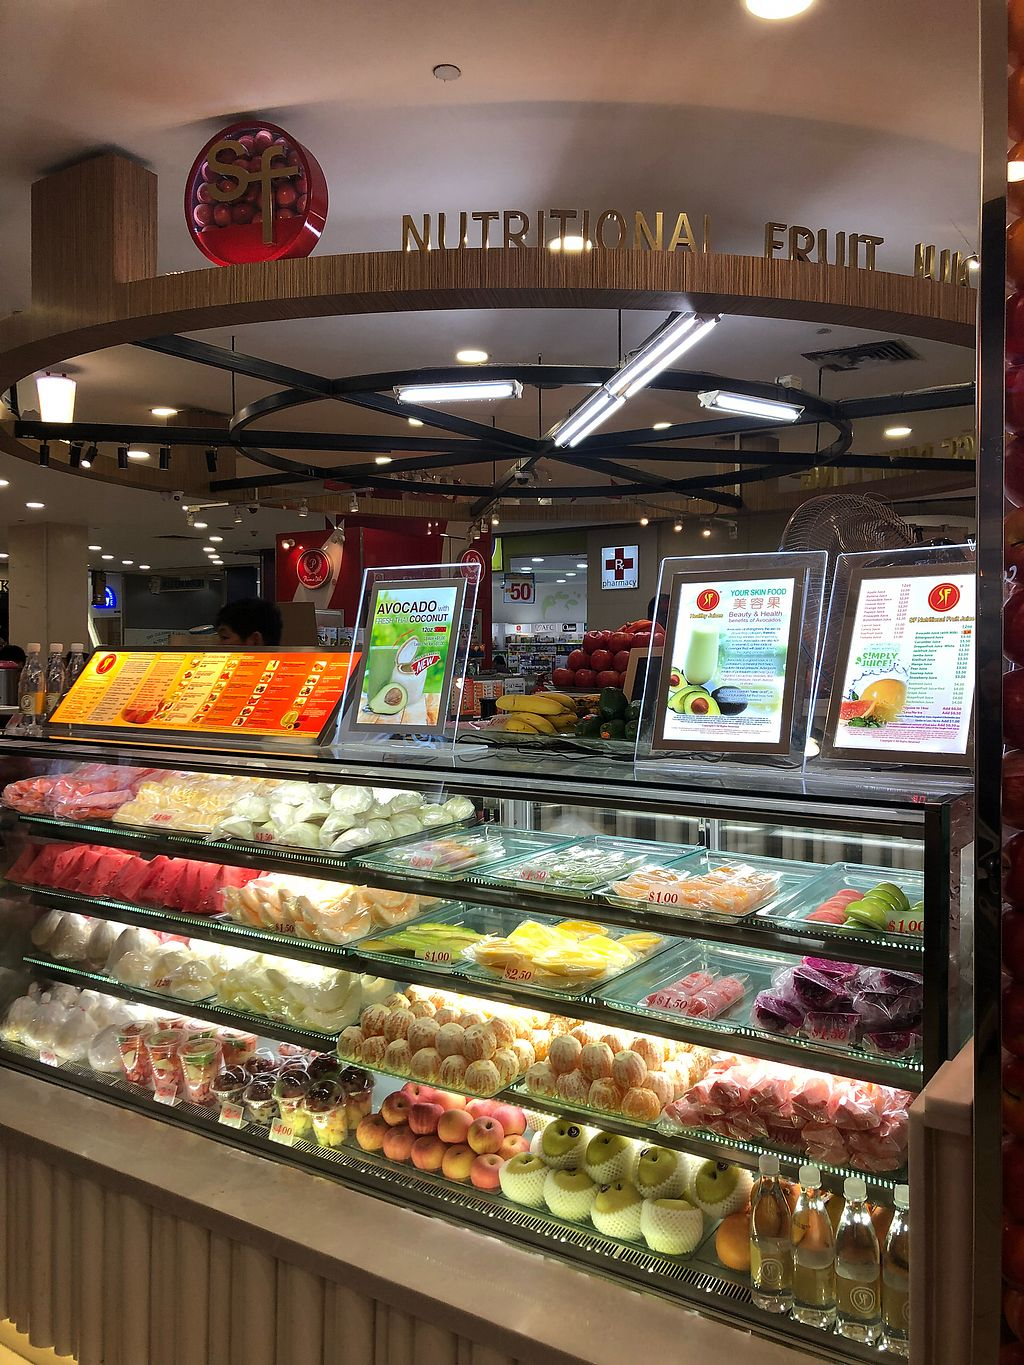 """Photo of SF Fruits & Juices - YewTee Point  by <a href=""""/members/profile/AmyLeySzeThoo"""">AmyLeySzeThoo</a> <br/>Stall front <br/> April 11, 2018  - <a href='/contact/abuse/image/115634/383657'>Report</a>"""